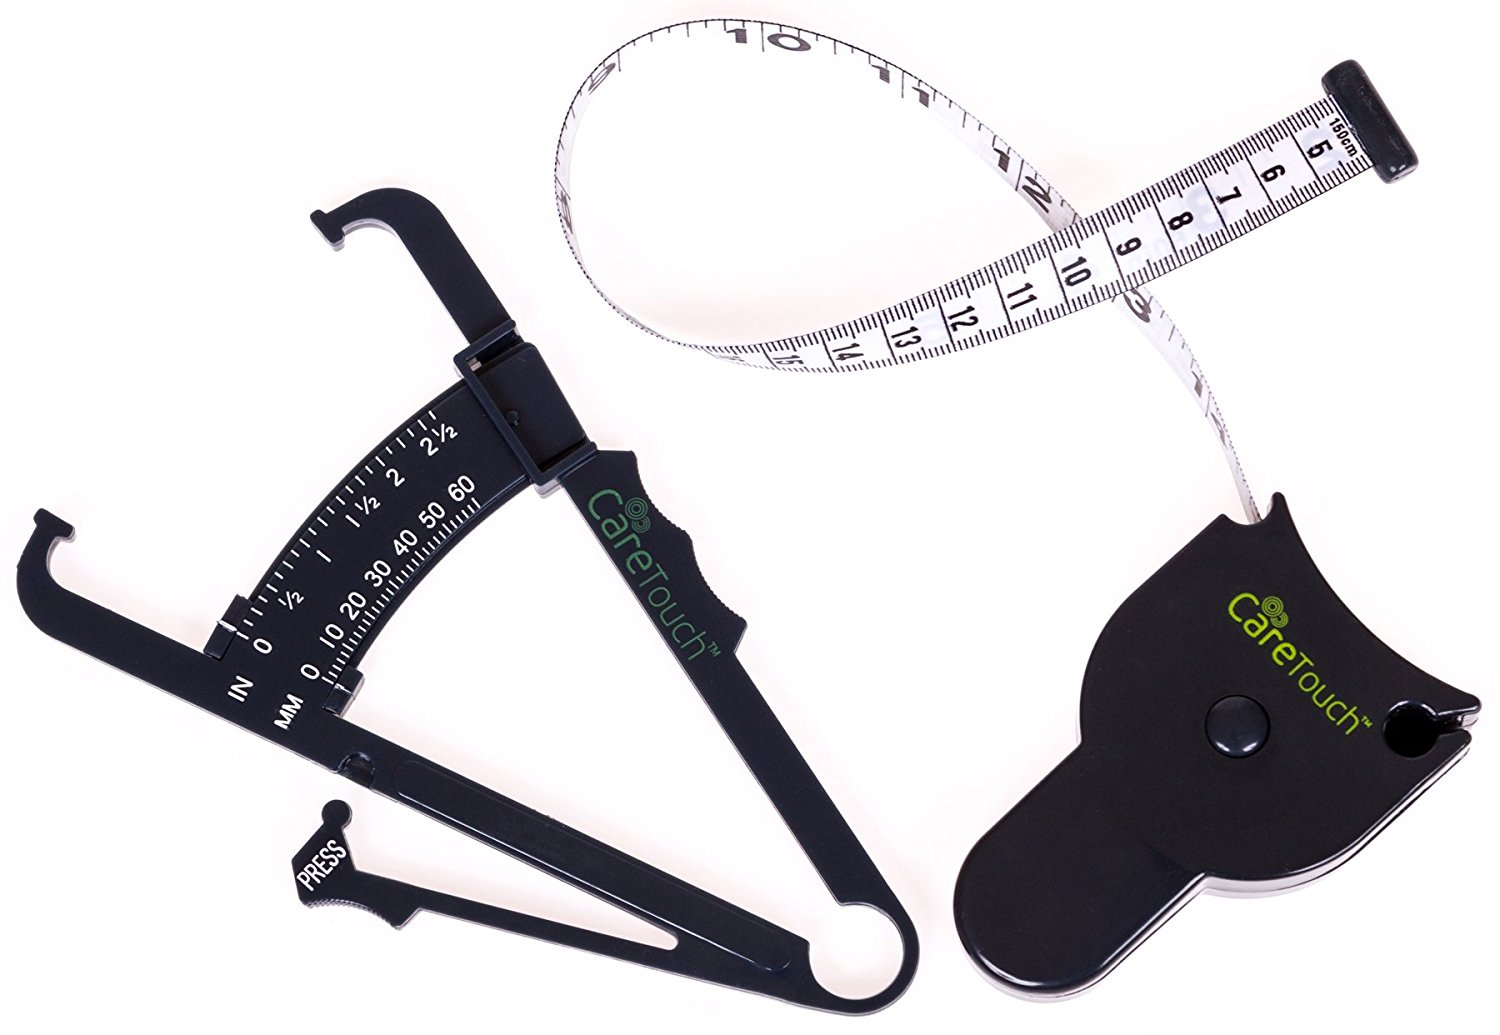 Skin Fold Body Caliber Set    FULL SET - This set includes a Care Touch Caliper Tool, Care Touch Measure Tape and Measurement Chart for men and women  ACCURATE BODY FAT READING - Measure your body fat by gauging your skinfold thickness and not based on your weight or height  FAST RESULTS - Get quick and accurate results in just 3 quick steps. Pinch. Click. Read  EASY TO READ - Check your results on our measurement chart. Just match the results from the caliper tool with your age and get the results.